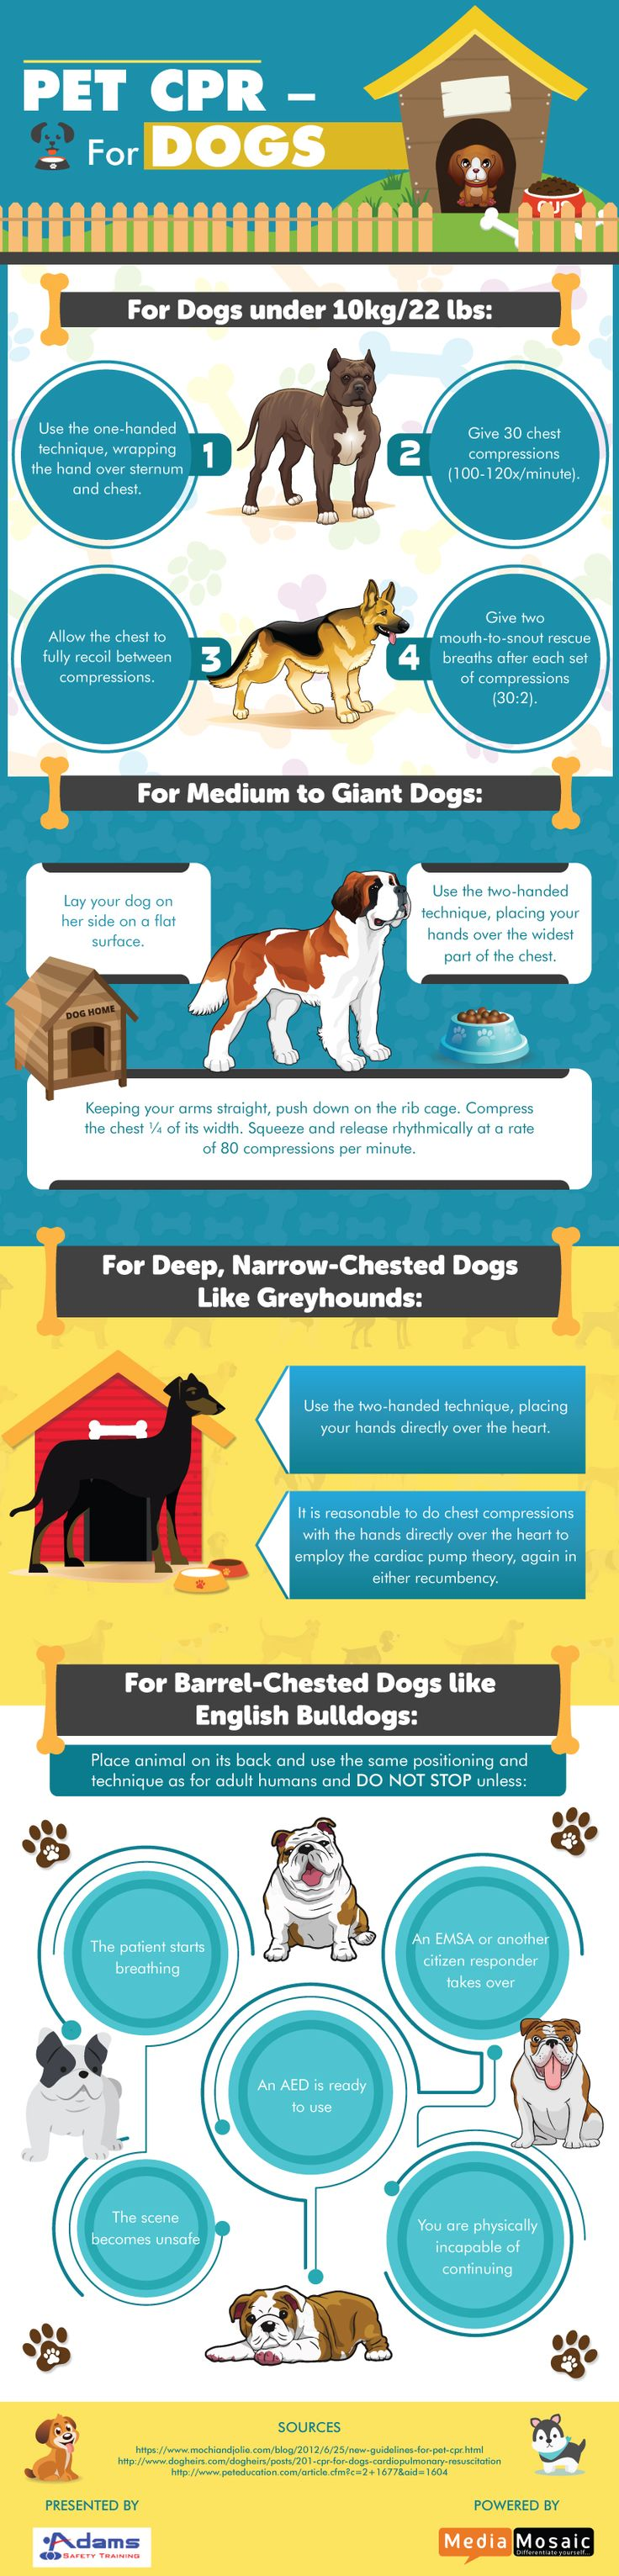 """CPR or Cardiopulmonary Resuscitation is a combination of chest compression and artificial respiration. The infographic titled, """"Pet CPR for Dogs"""" describes the important steps to perform CPR for dogs.   Visit more at: https://www.adamssafety.com/how-to-perform-cpr-for-dogs-infographic/"""